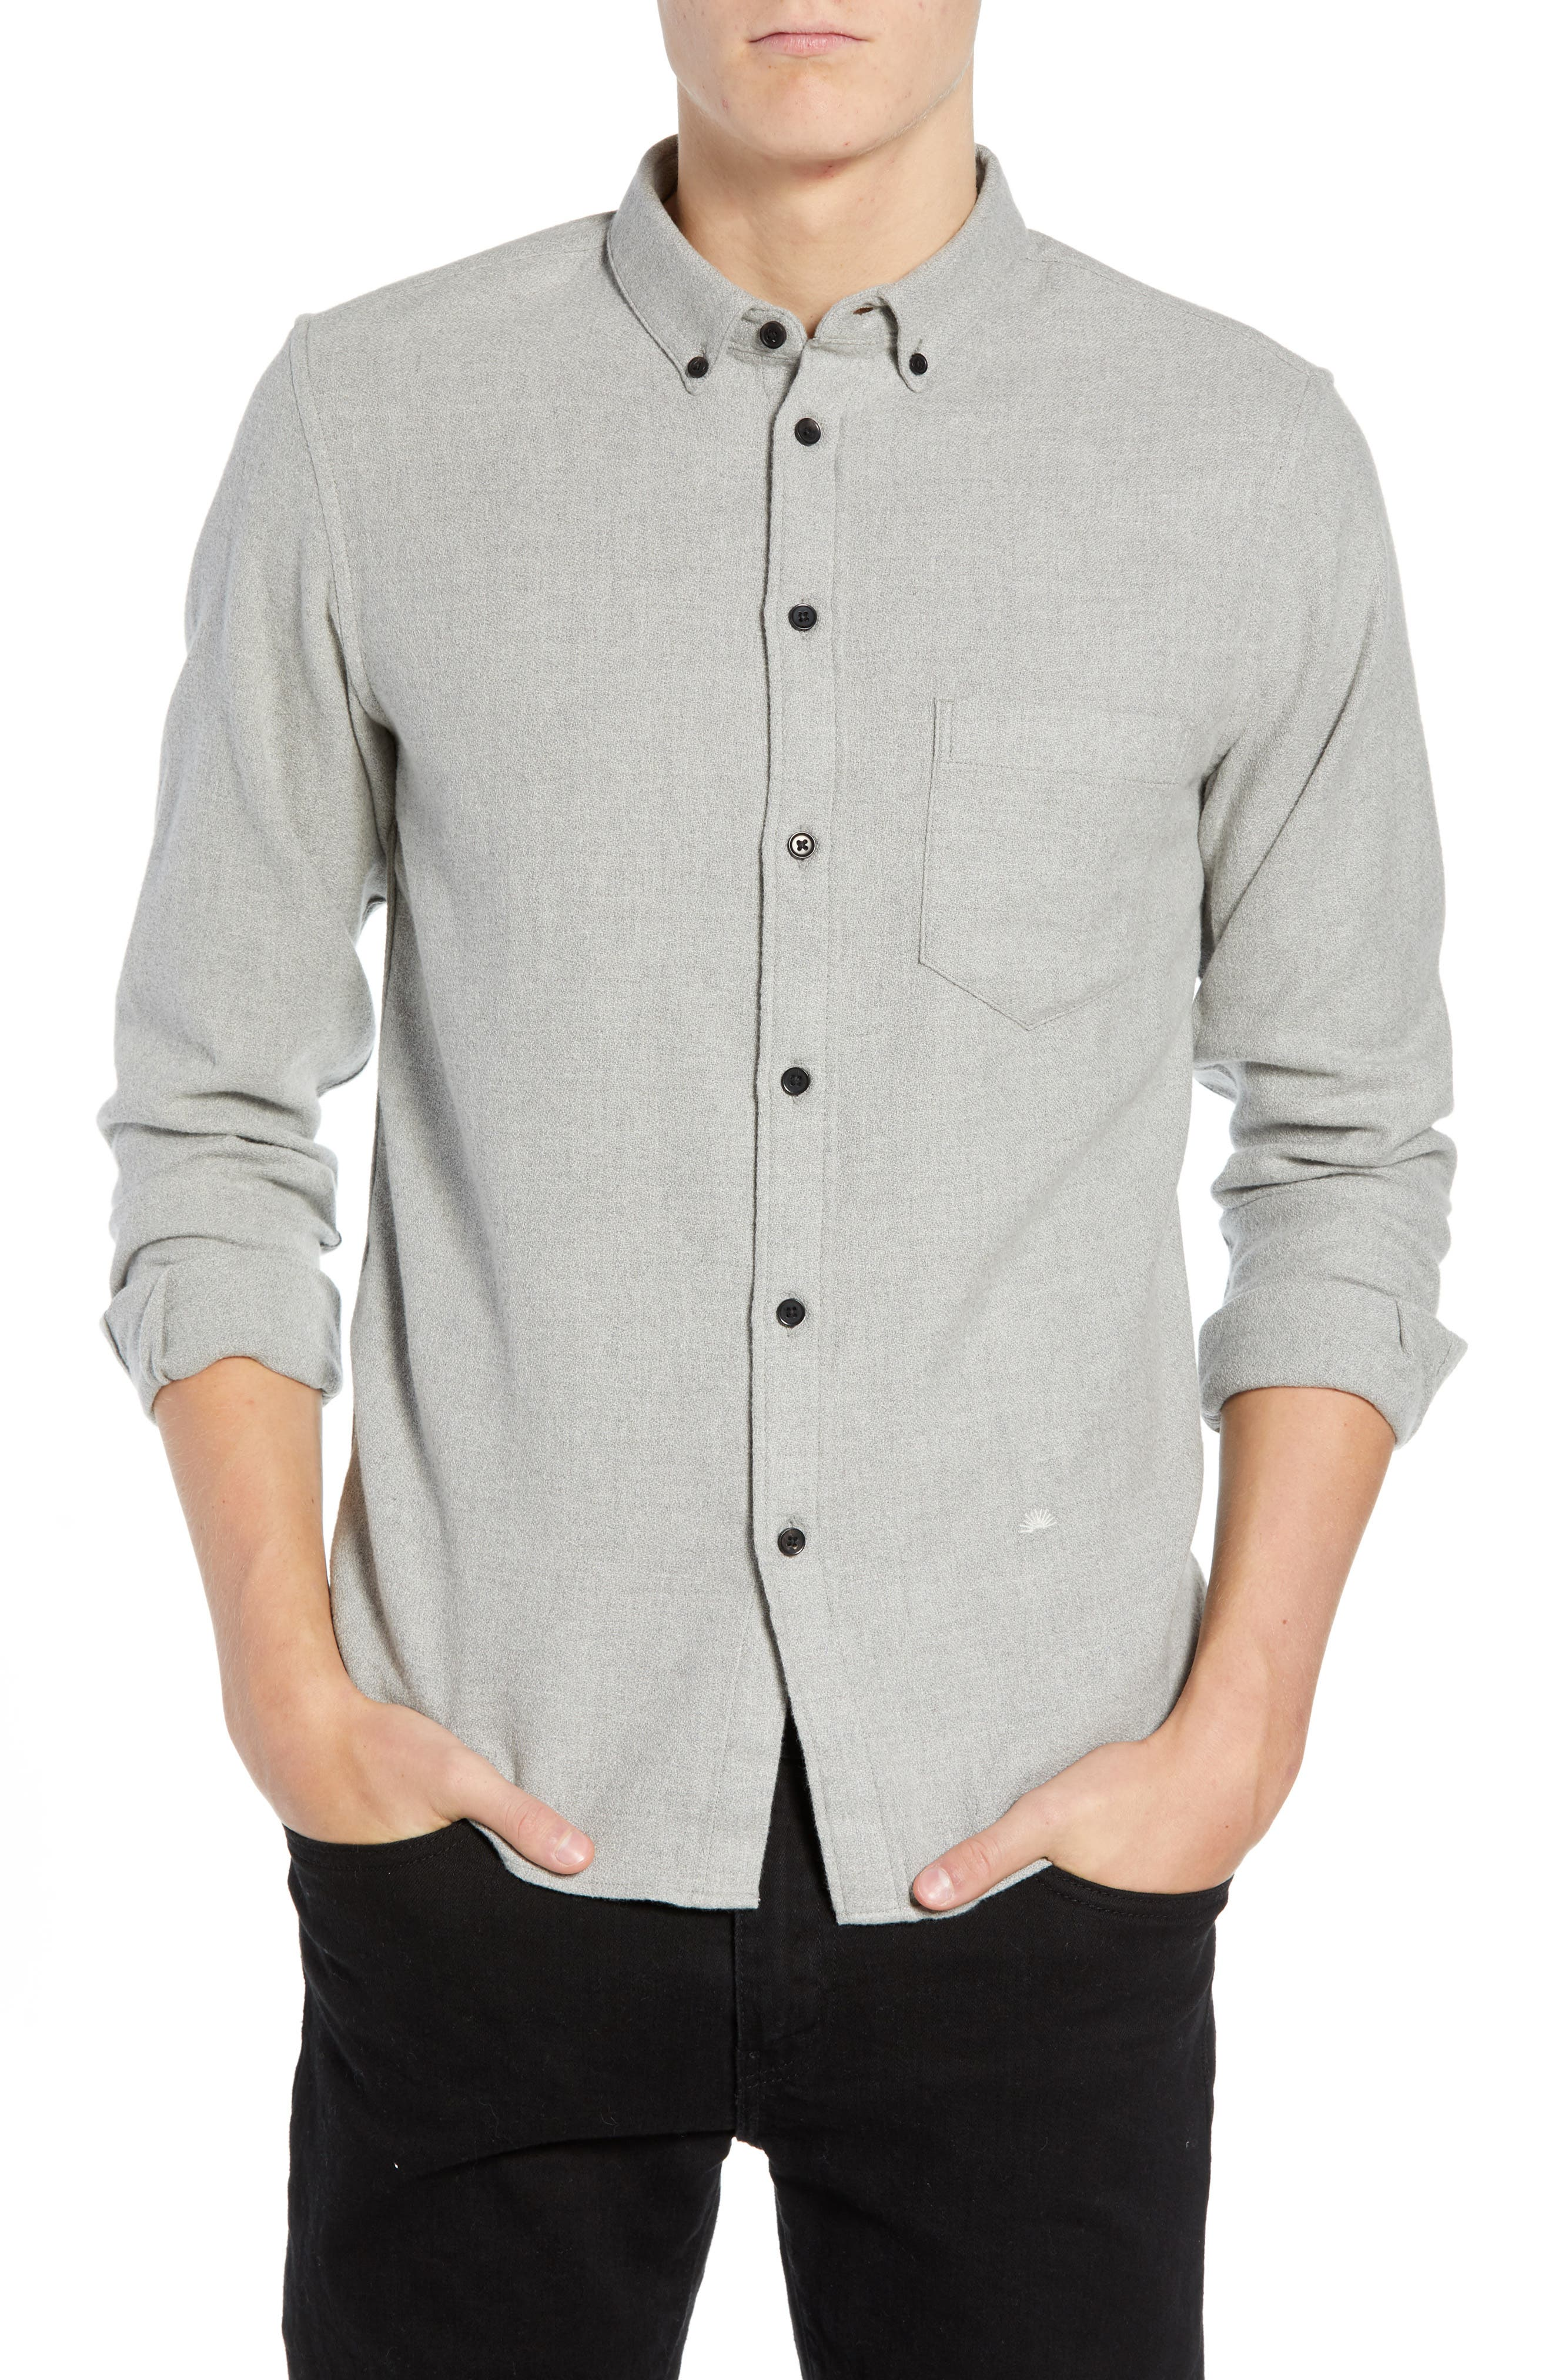 Levi's<sup>®</sup> Made & Crafted Regular Fit Mélange Shirt,                         Main,                         color, 020